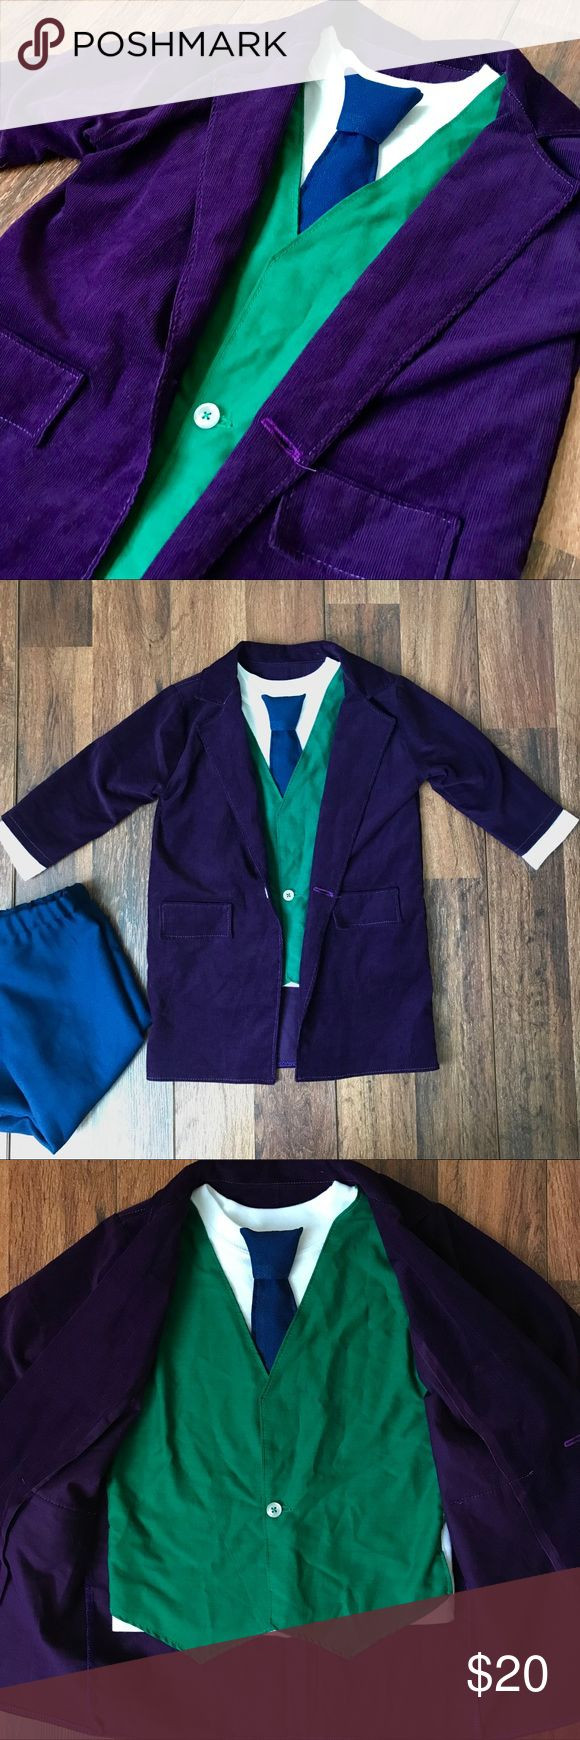 The 25 best joker costume ideas on pinterest costume joker kids joker costume kids handmade joker costume so cute and very unique my son solutioingenieria Choice Image